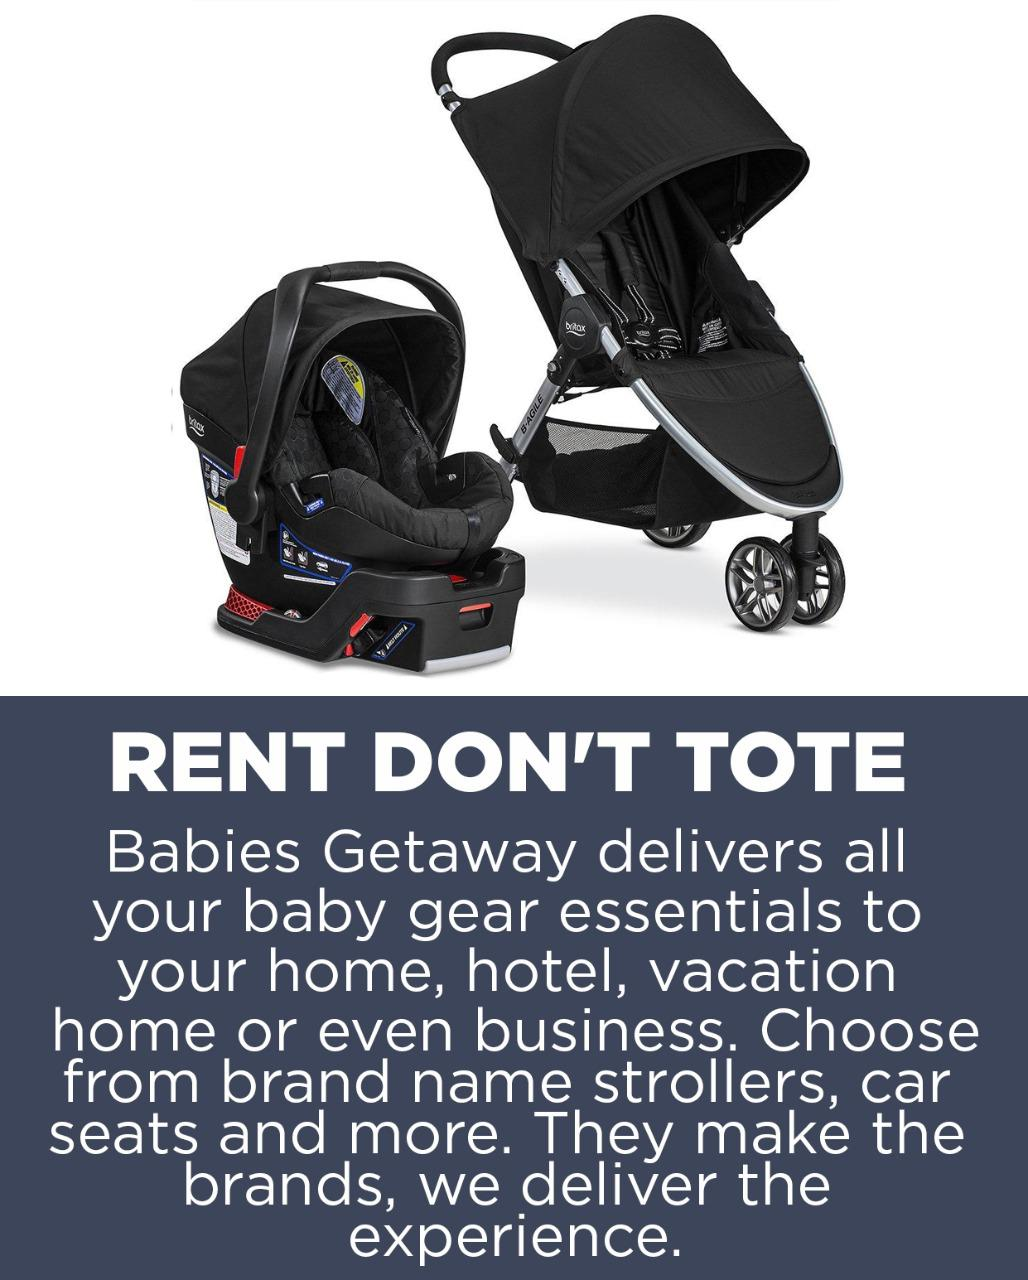 Book Babies Getaway for all your baby gear rental needs. Car Seat Rentals, High Chair Rentals, Pack N Play Rentals, Stroller Rentals and Crib Rentals are available in the USA